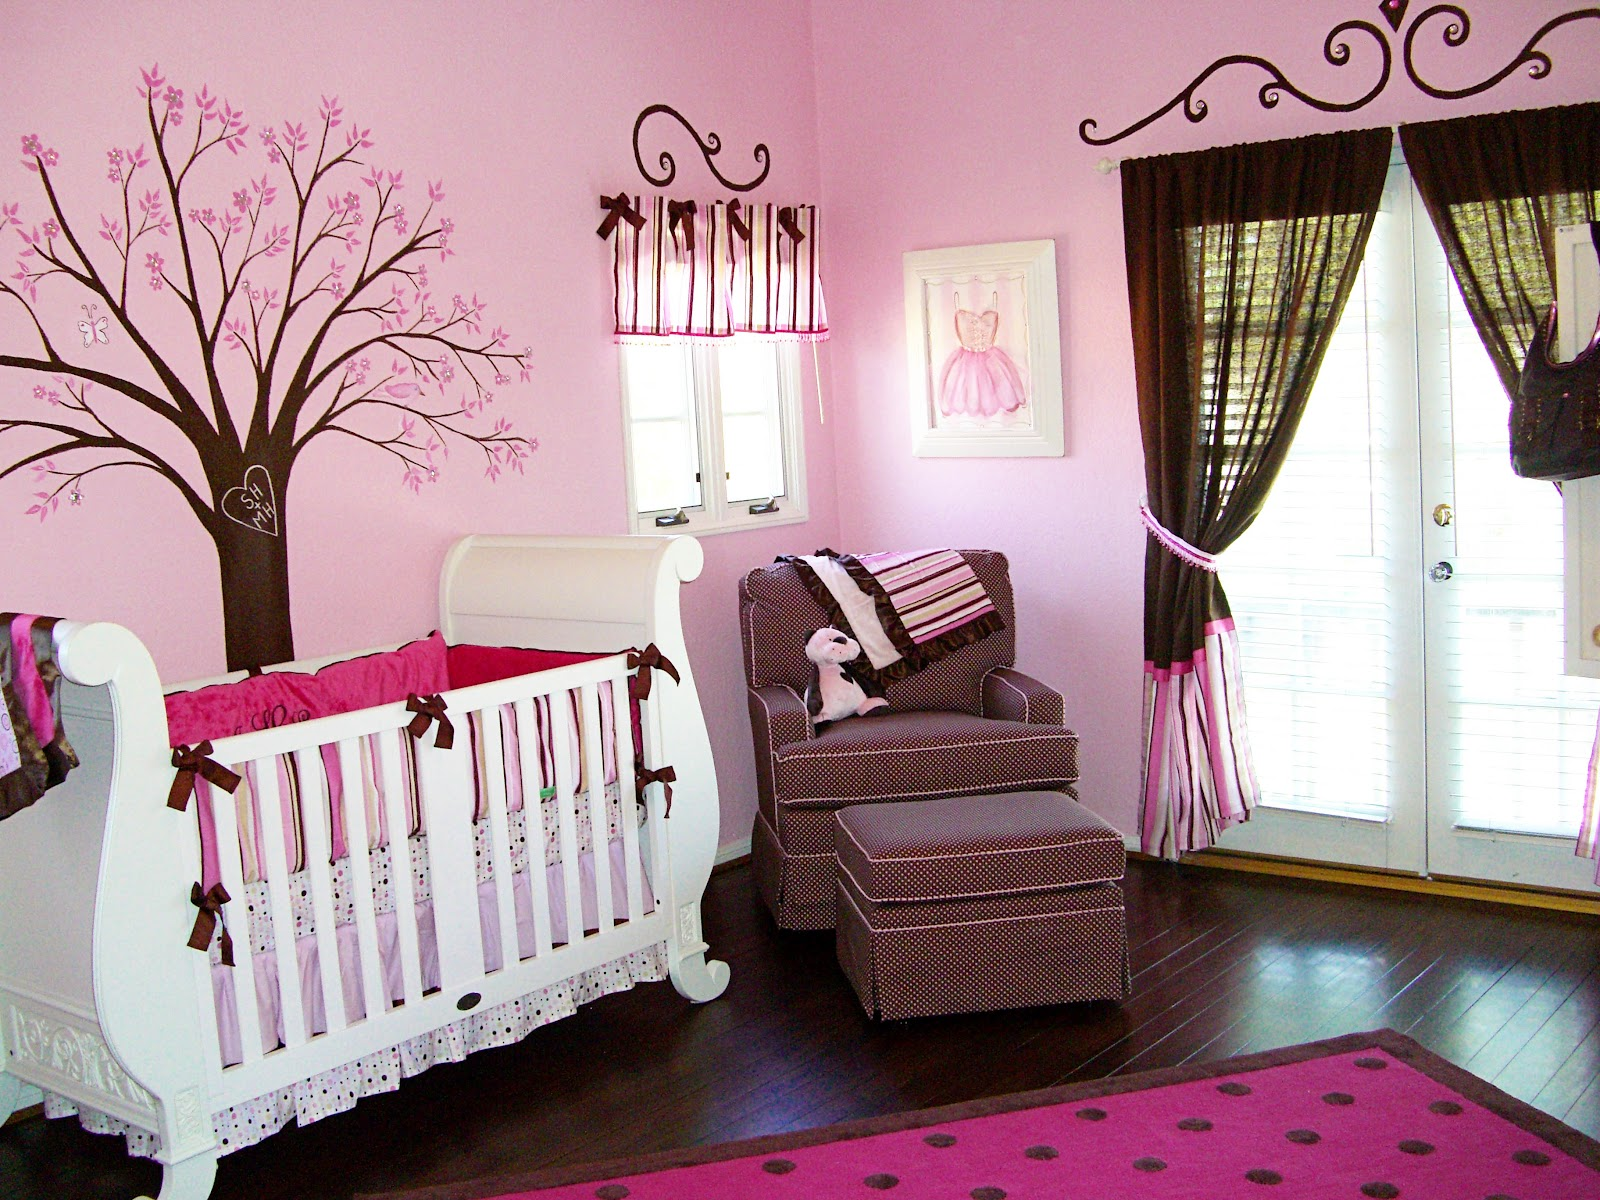 Full pink color girl baby room ideas decorate for Room design ideas pink